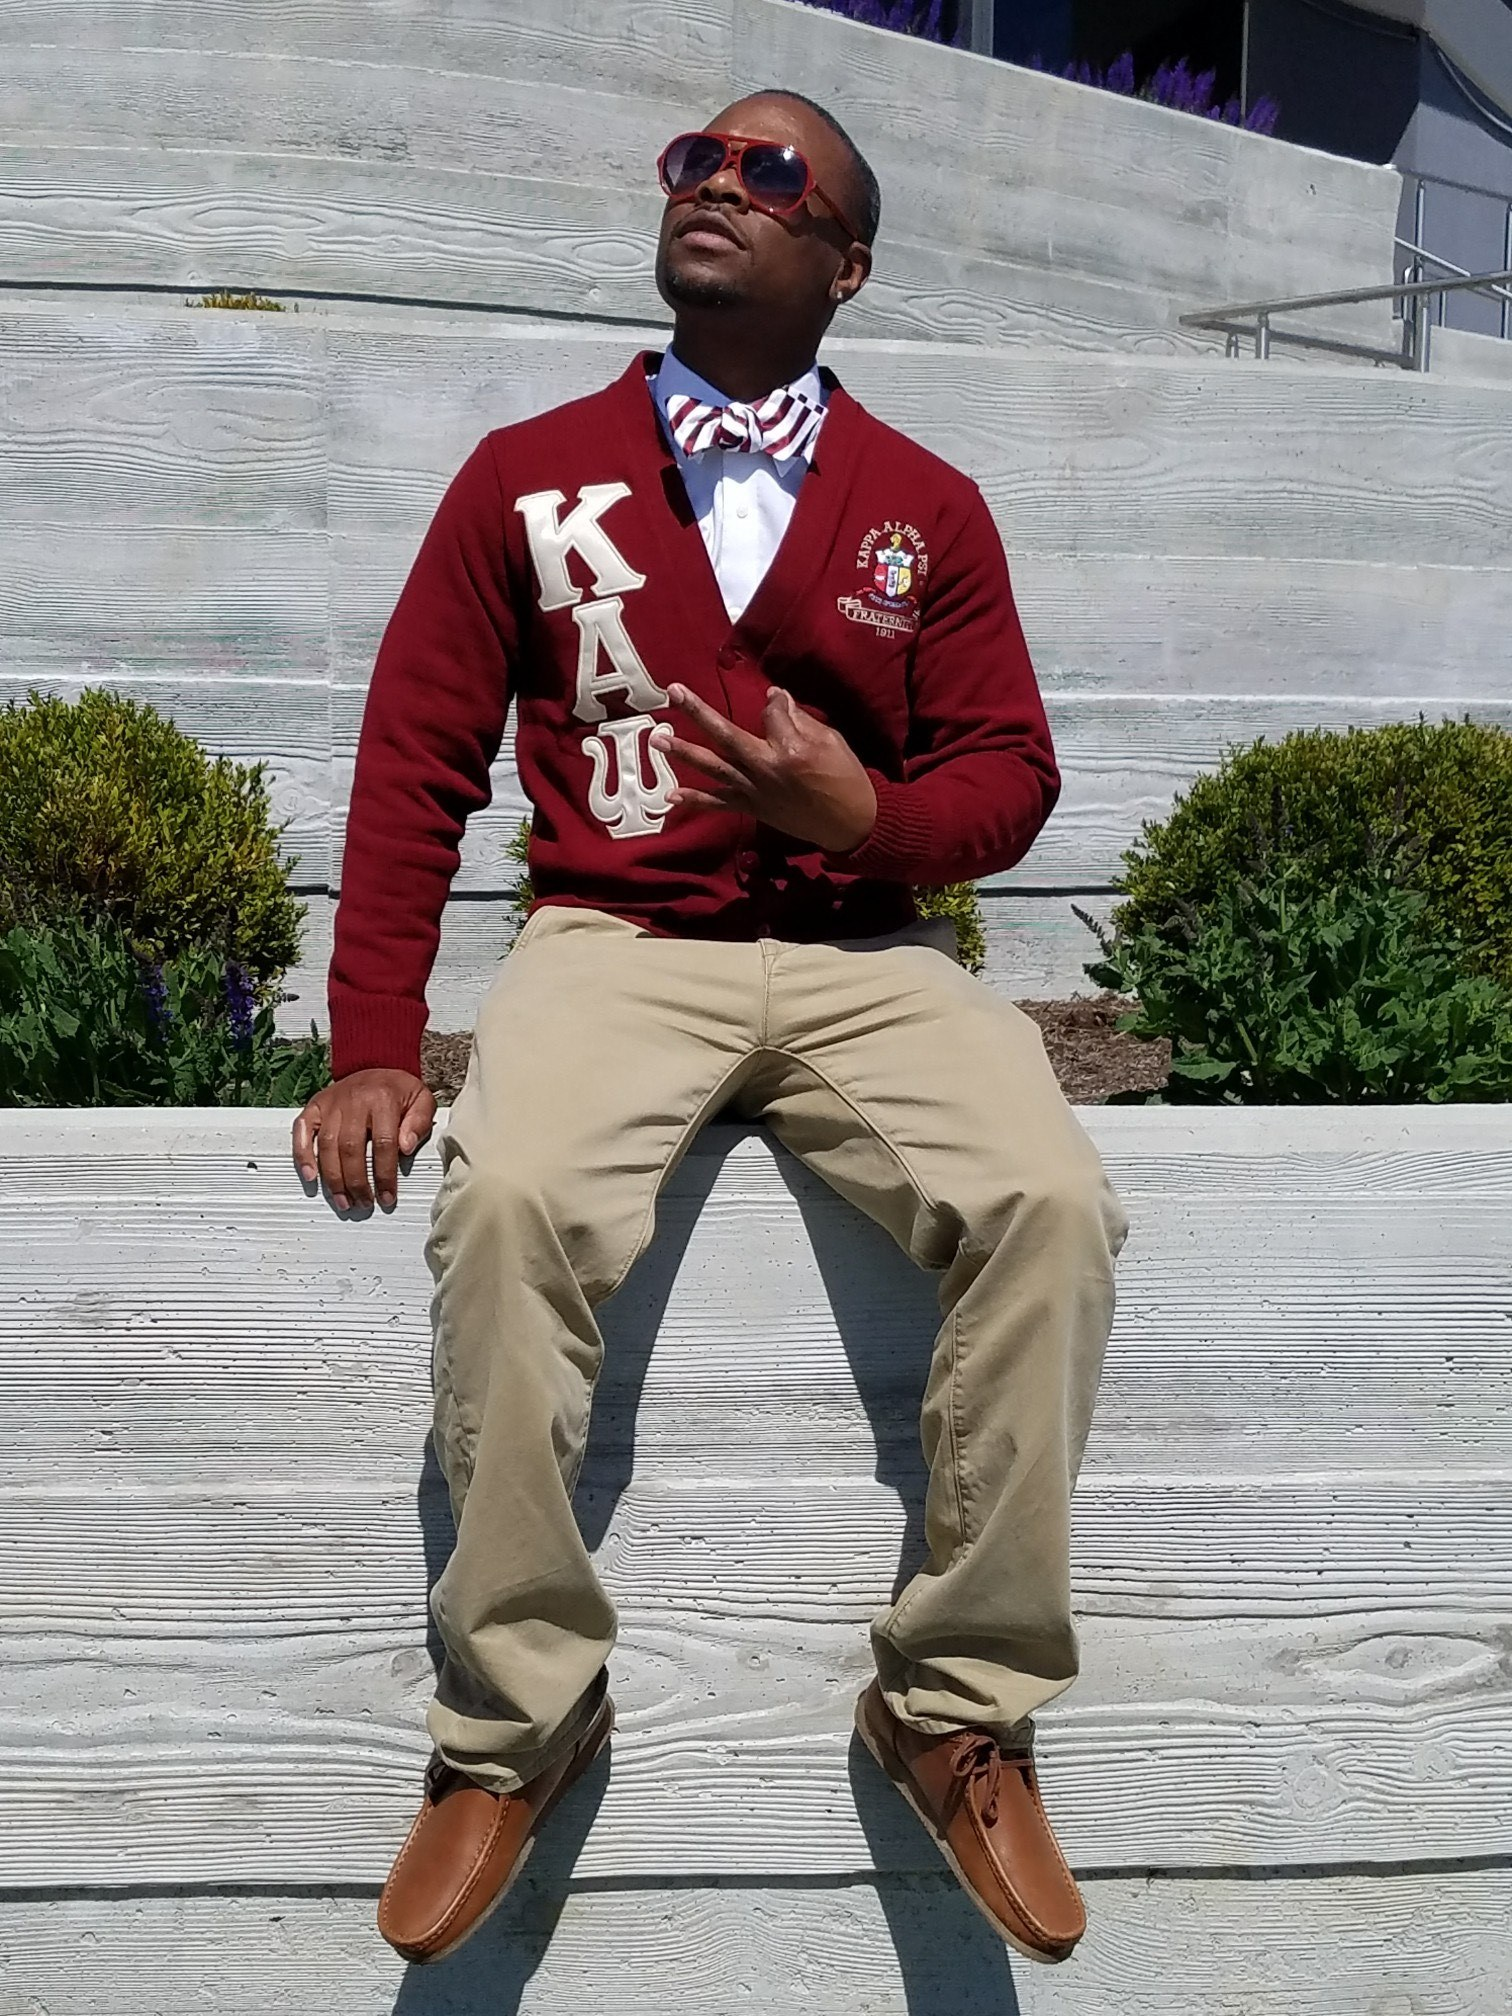 Damian Turner, looking up and into the distance,  connecting thumb and forefinger together, hand gesture use to signify membership of Kappa Alpha Psi, Inc